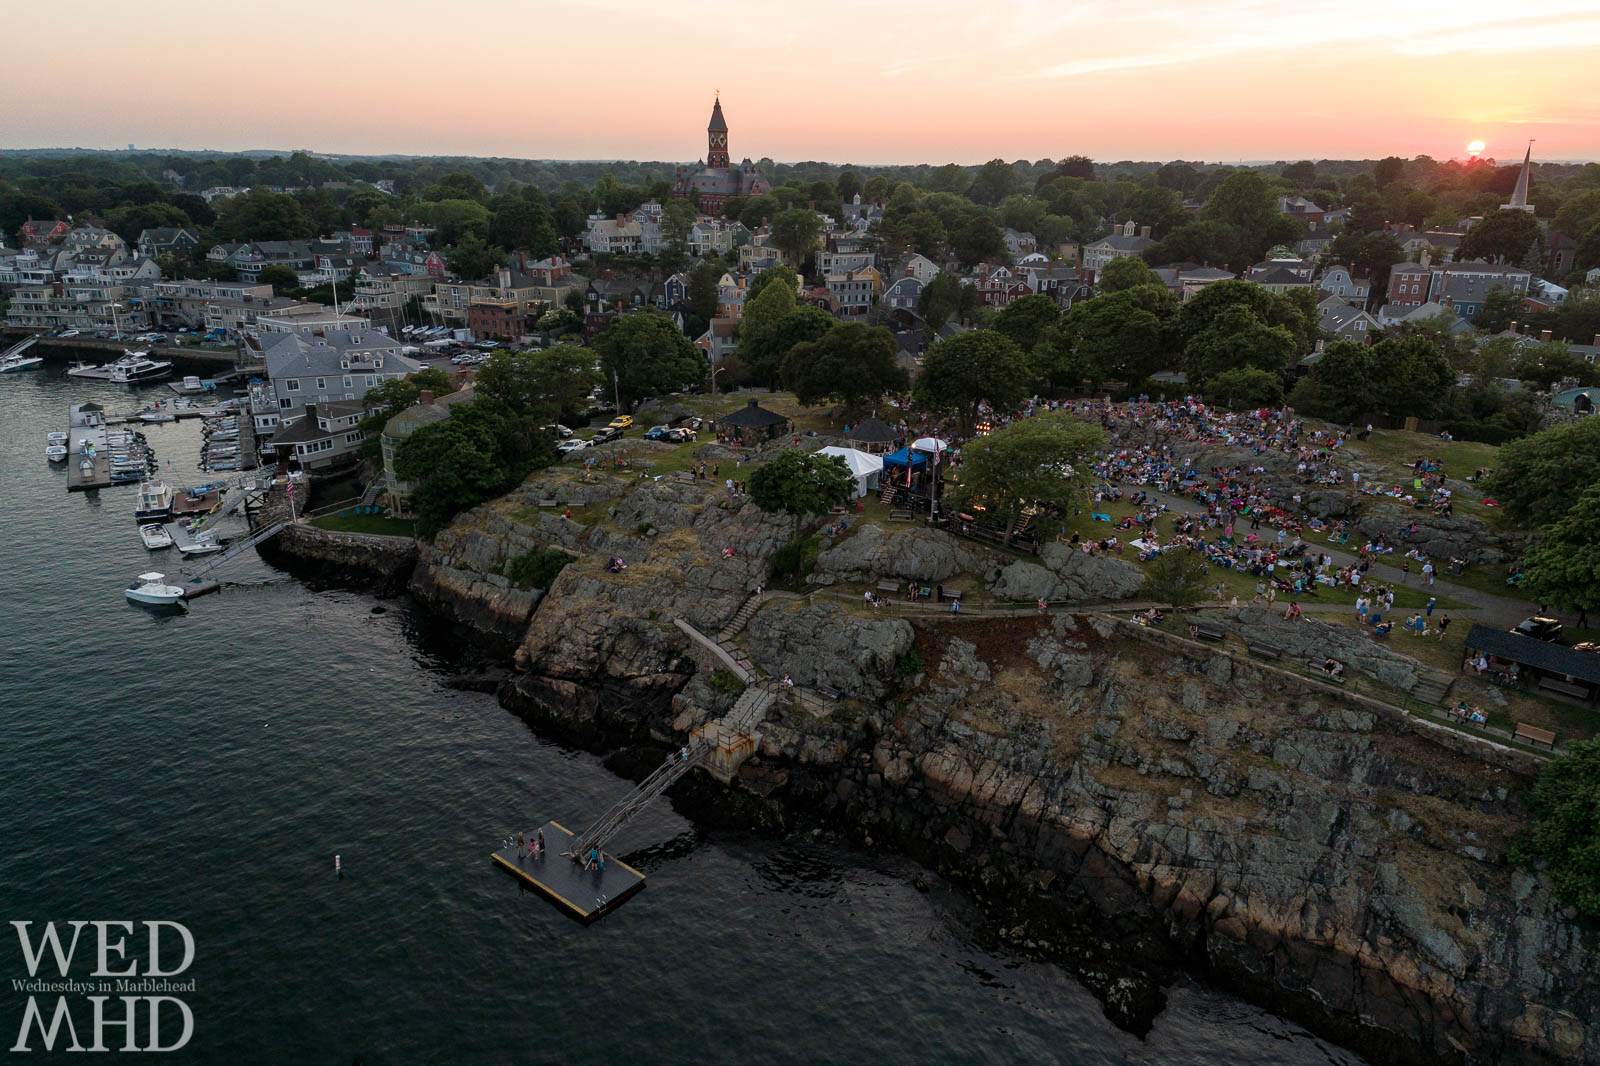 Crocker Park concerts take place at sunset each night during the annual Marblehead Festival of Arts